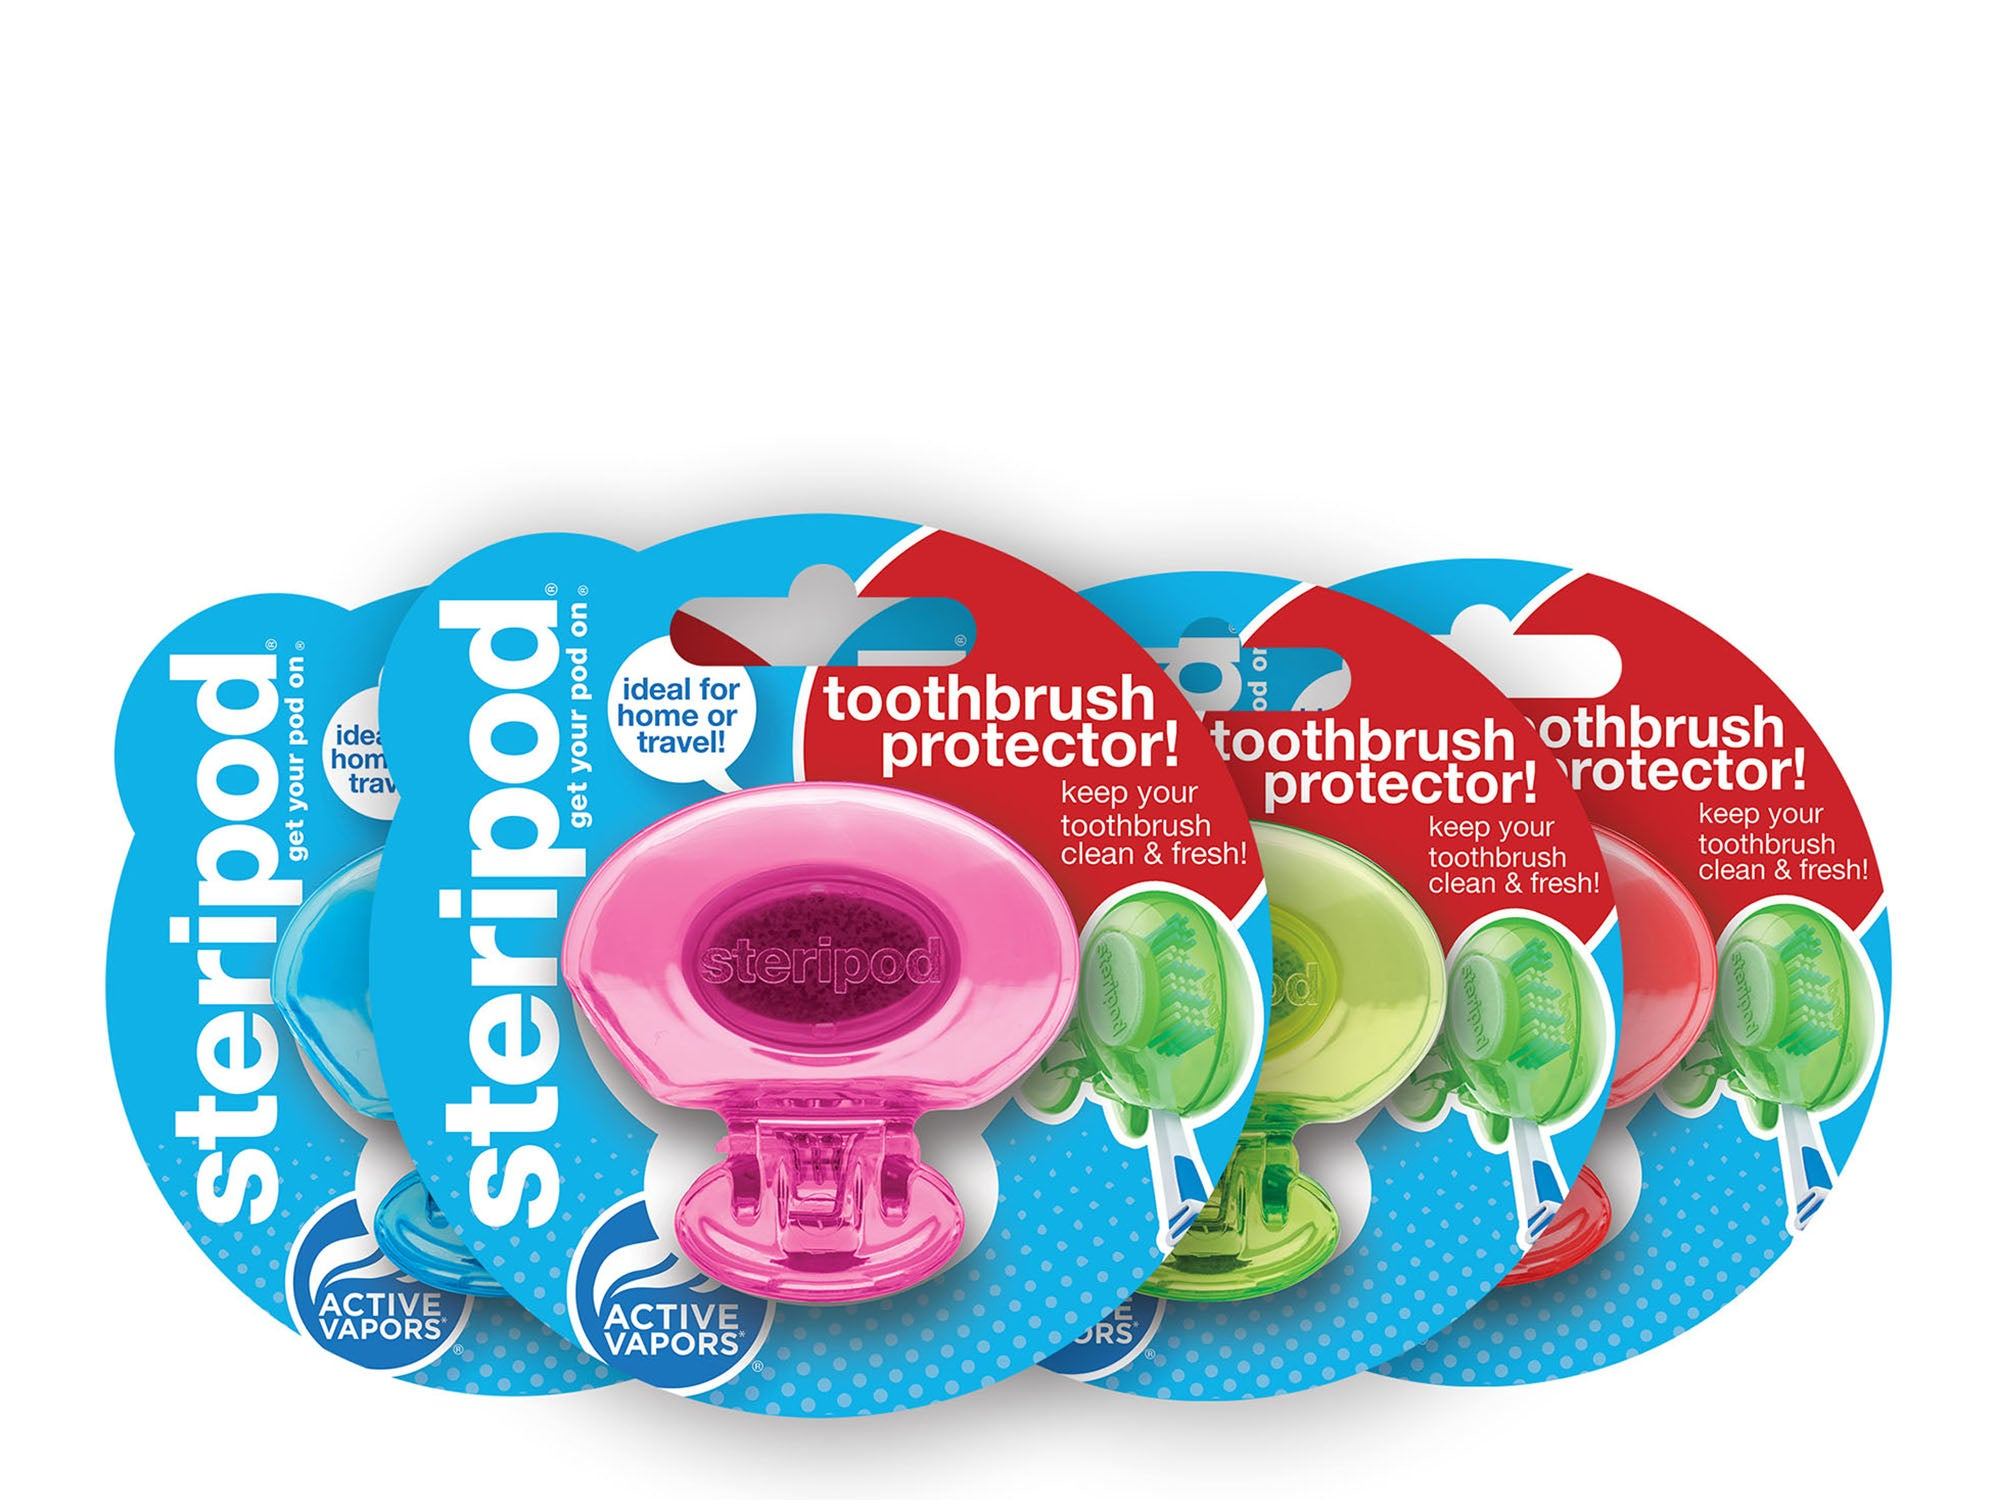 Stocking Stuffers: Classic Single Toothbrush Protectors Kit (Set of 12 Pods)